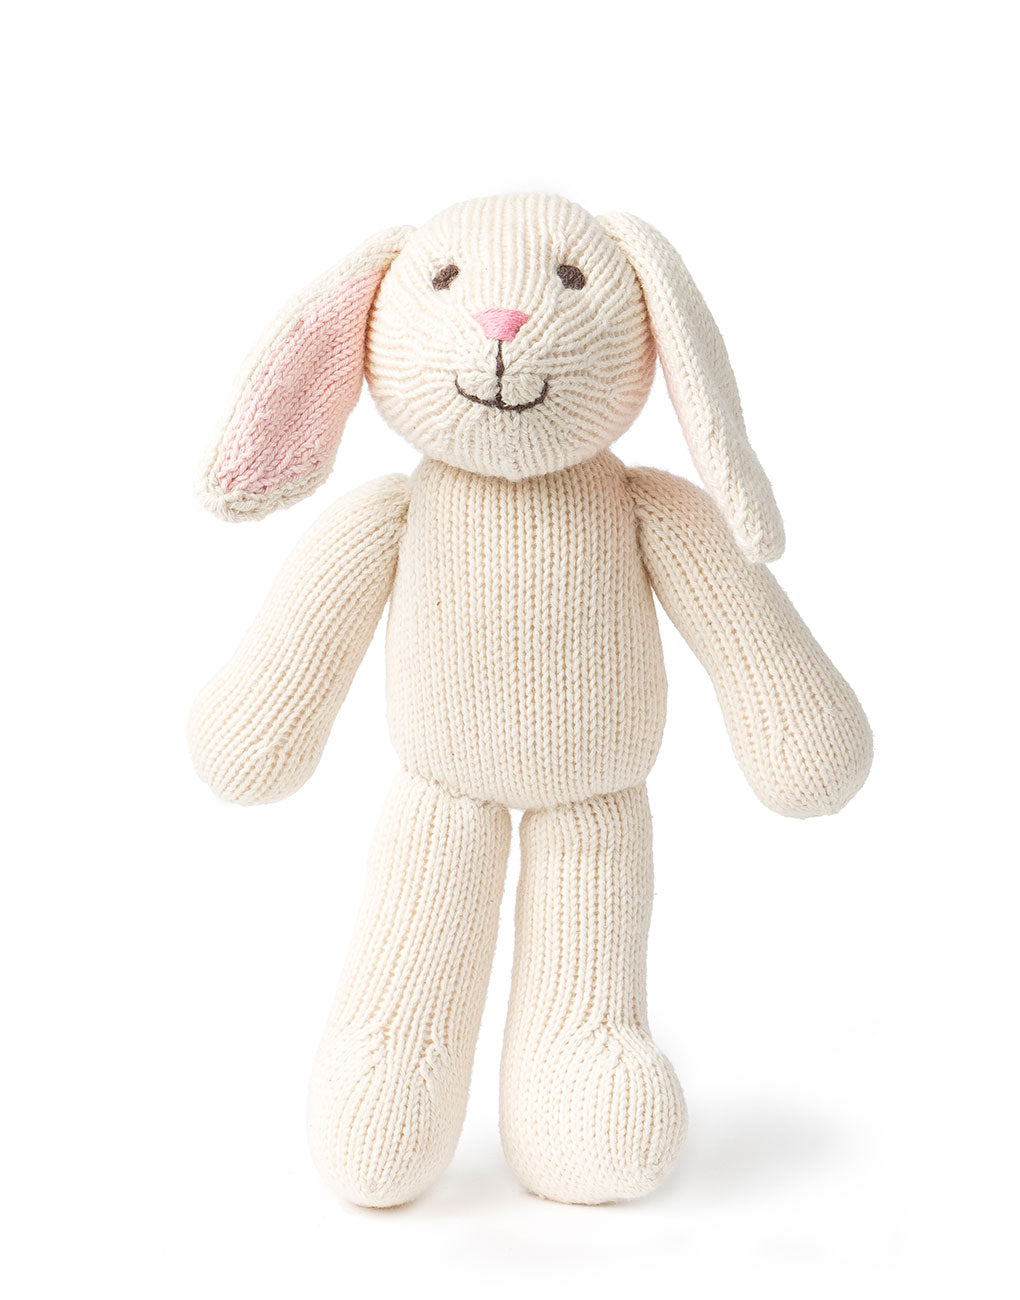 White Bunny Stuffed Animal